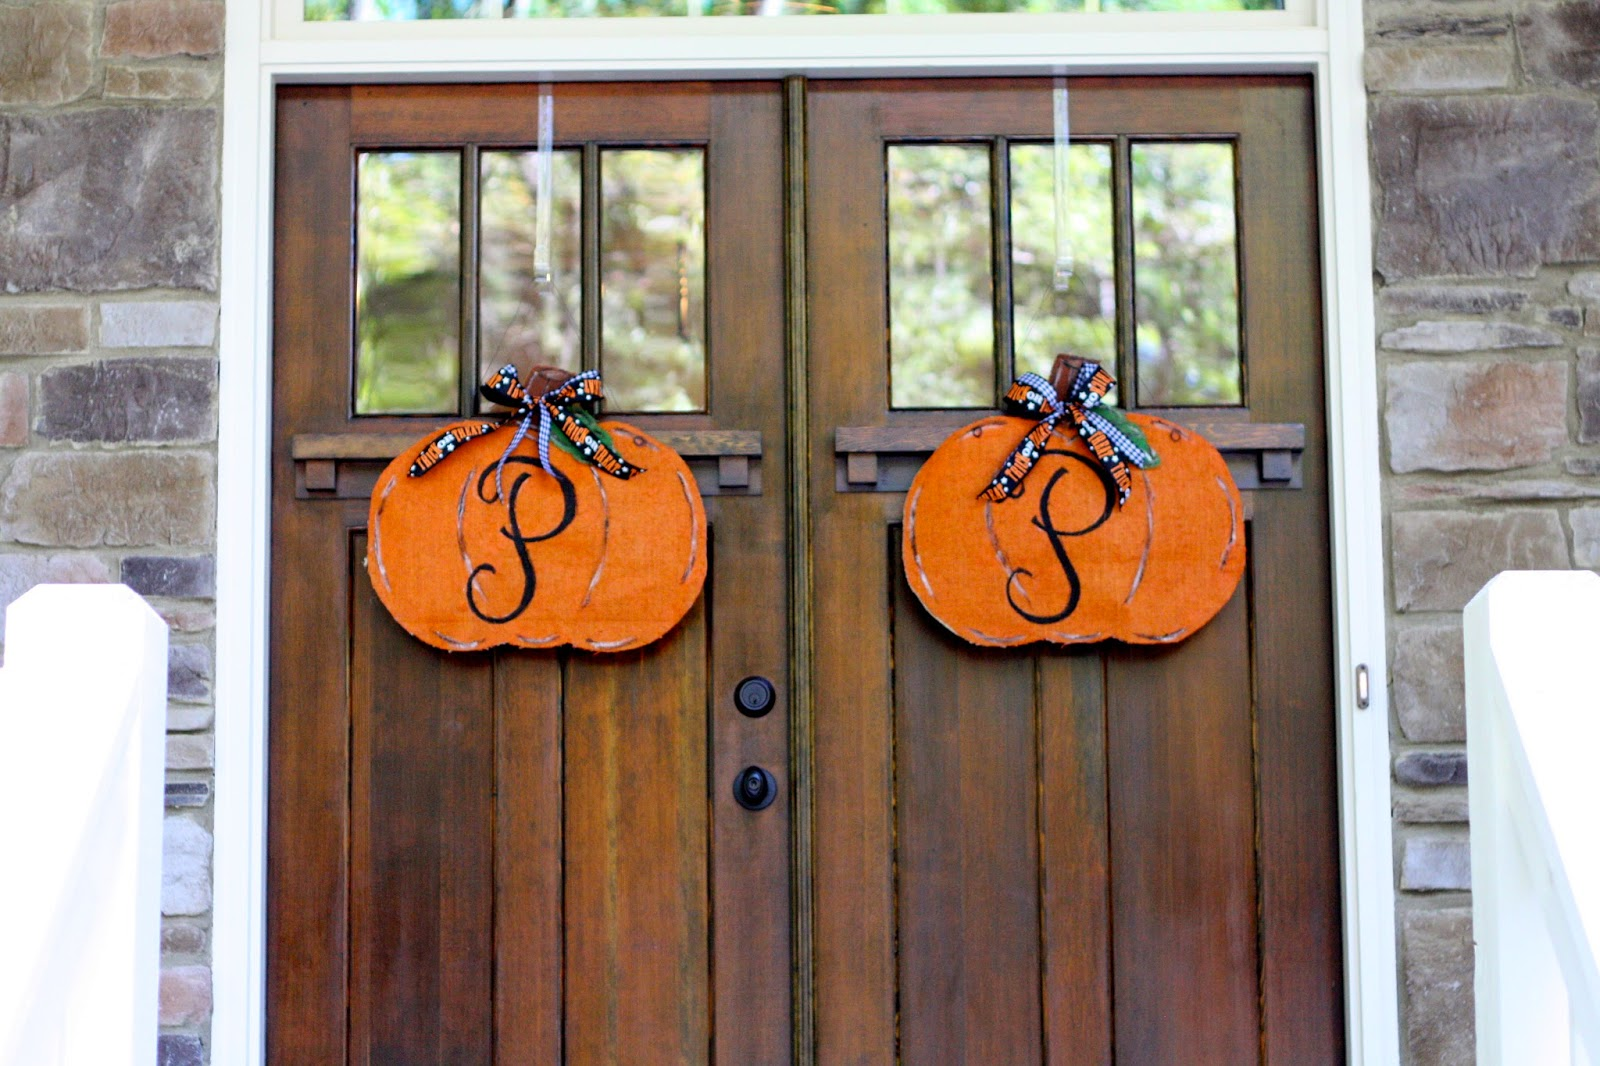 Door hanger fall front door decoration pumpkin door decoration -  Front Door Decor I Know Some People Have Had Their Fall Decor Up Since Sept 1 But I Like To Wait Until The Official Start Of Fall To Start Putting